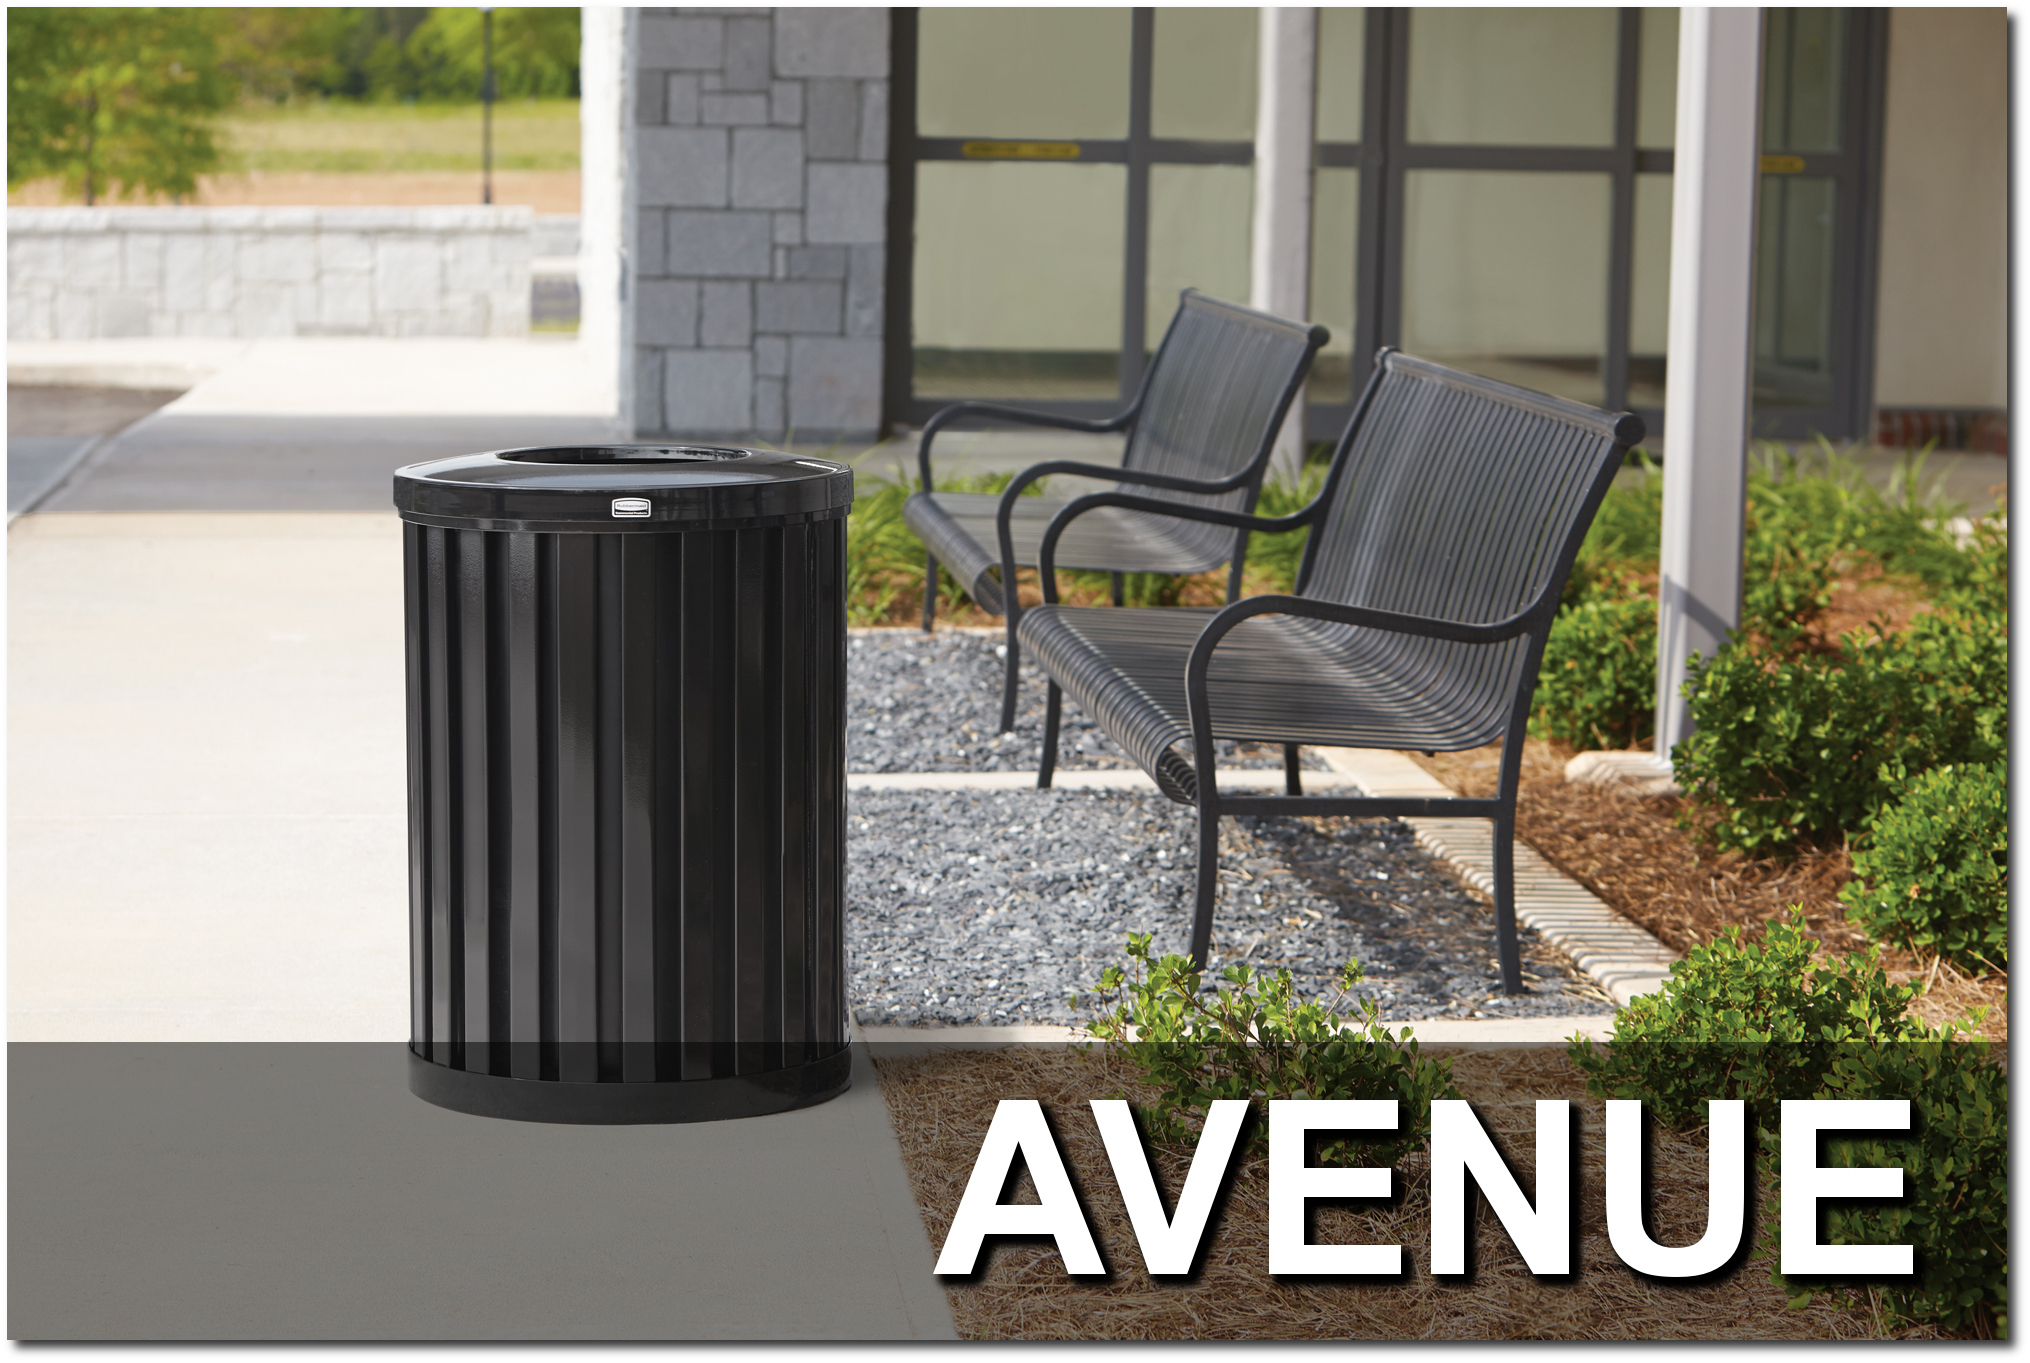 Avenue Series Trash Receptacles